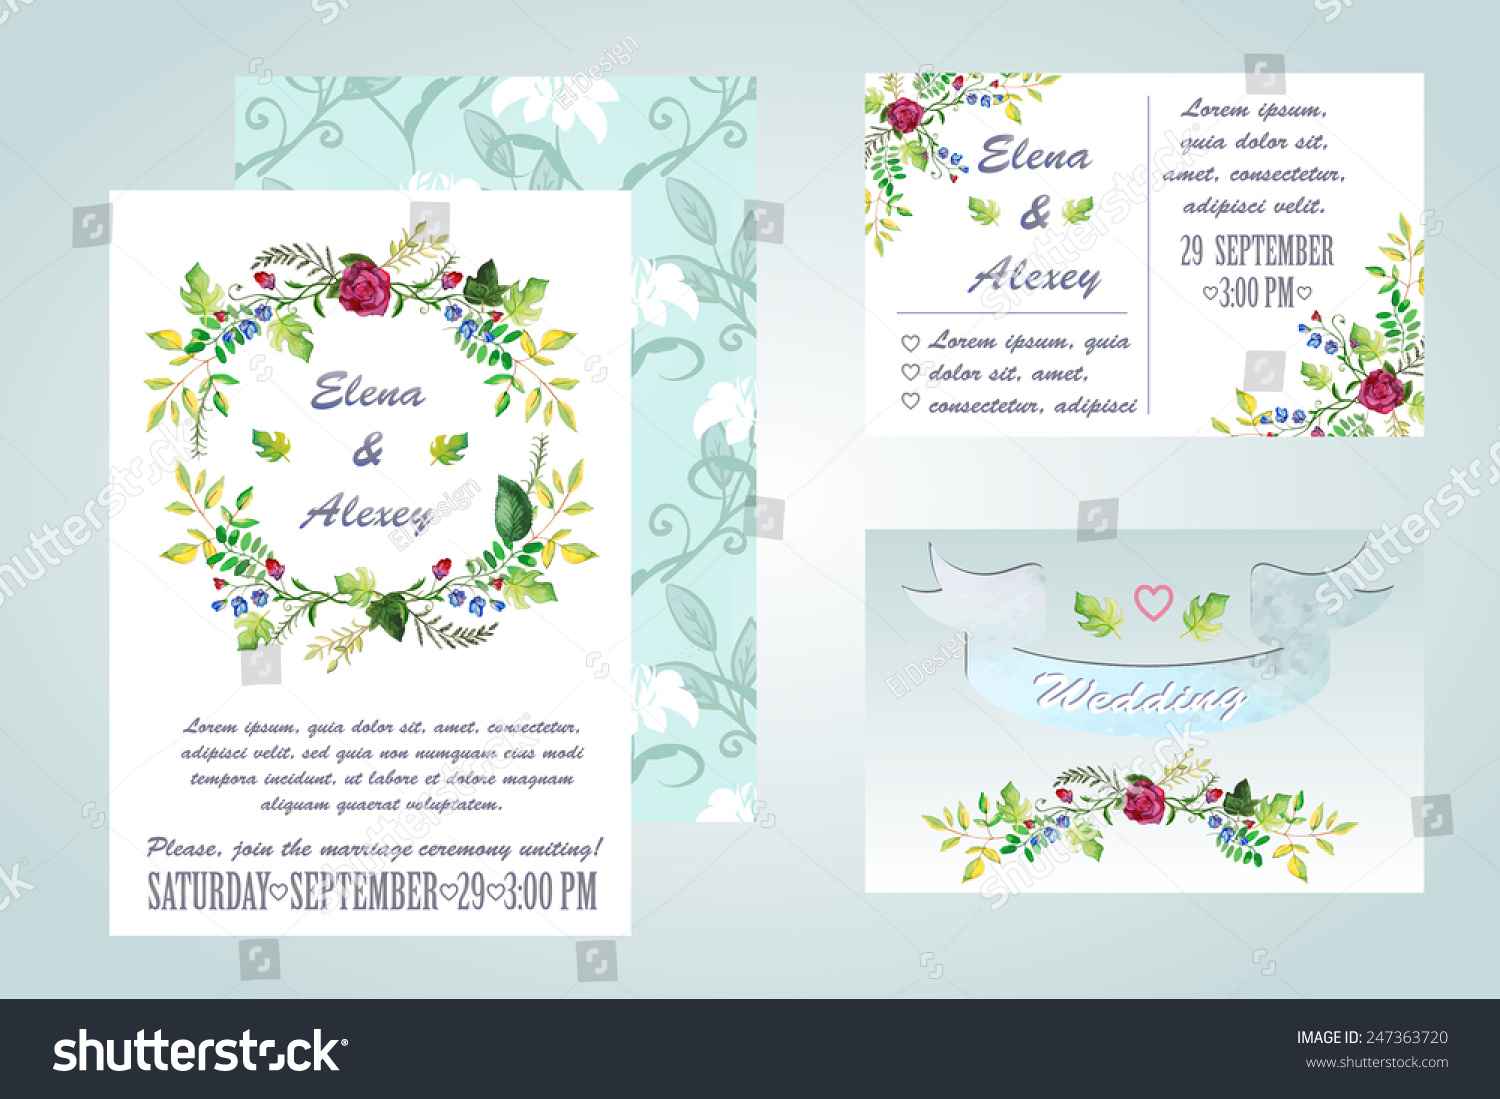 Watercolor wedding invitation vector illustration can stock vector watercolor wedding invitation vector illustration can be used to design the invitation to the stopboris